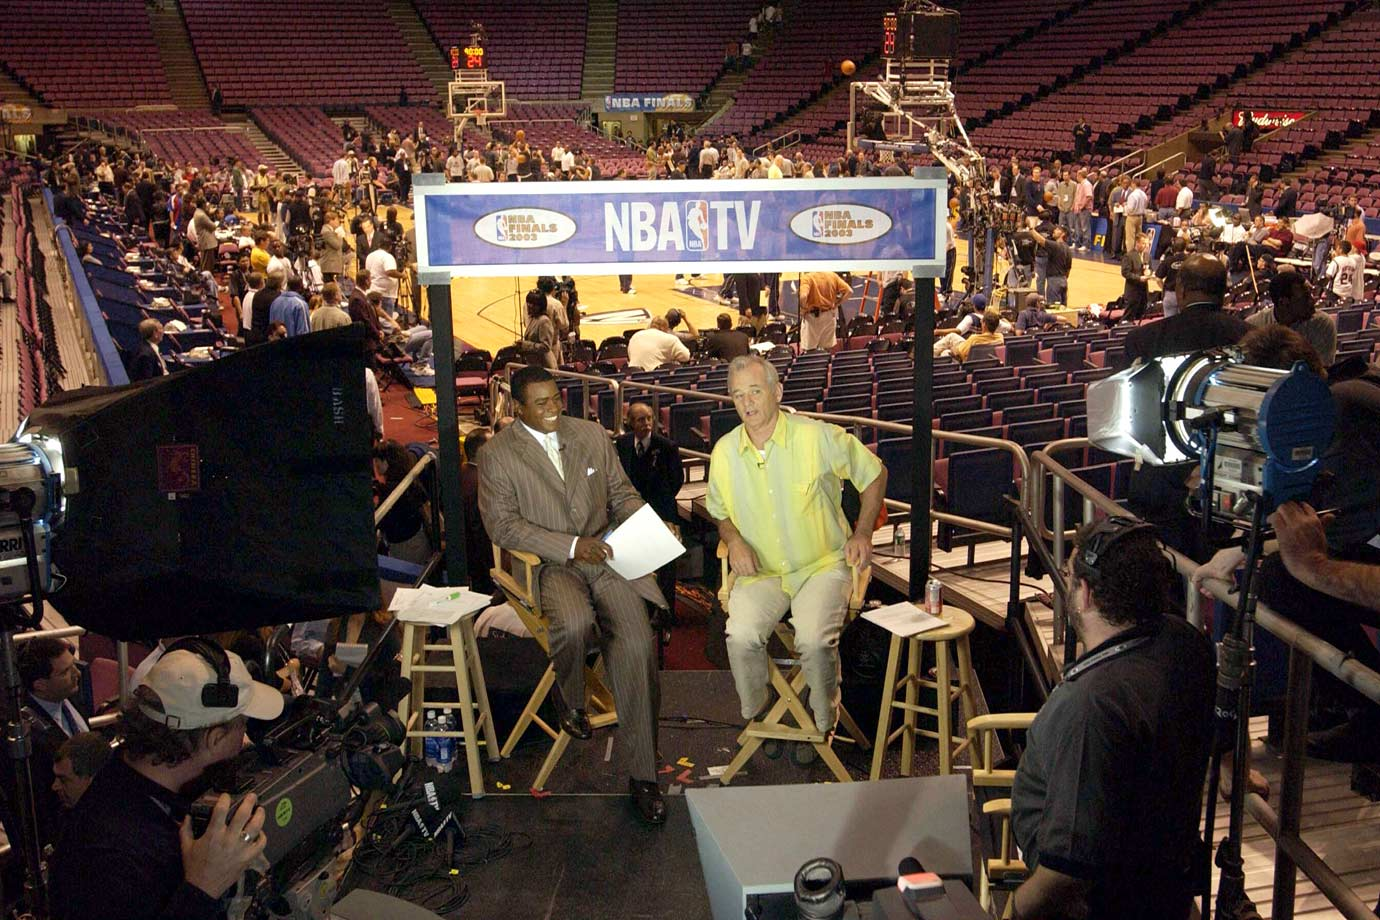 Bill Murray appears on NBA TV with Ahmad Rashad before Game 4 of the NBA Finals between the New Jersey Nets and the San Antonio Spurs on June 11, 2003 at Continental Airlines Arena in East Rutherford, N.J.